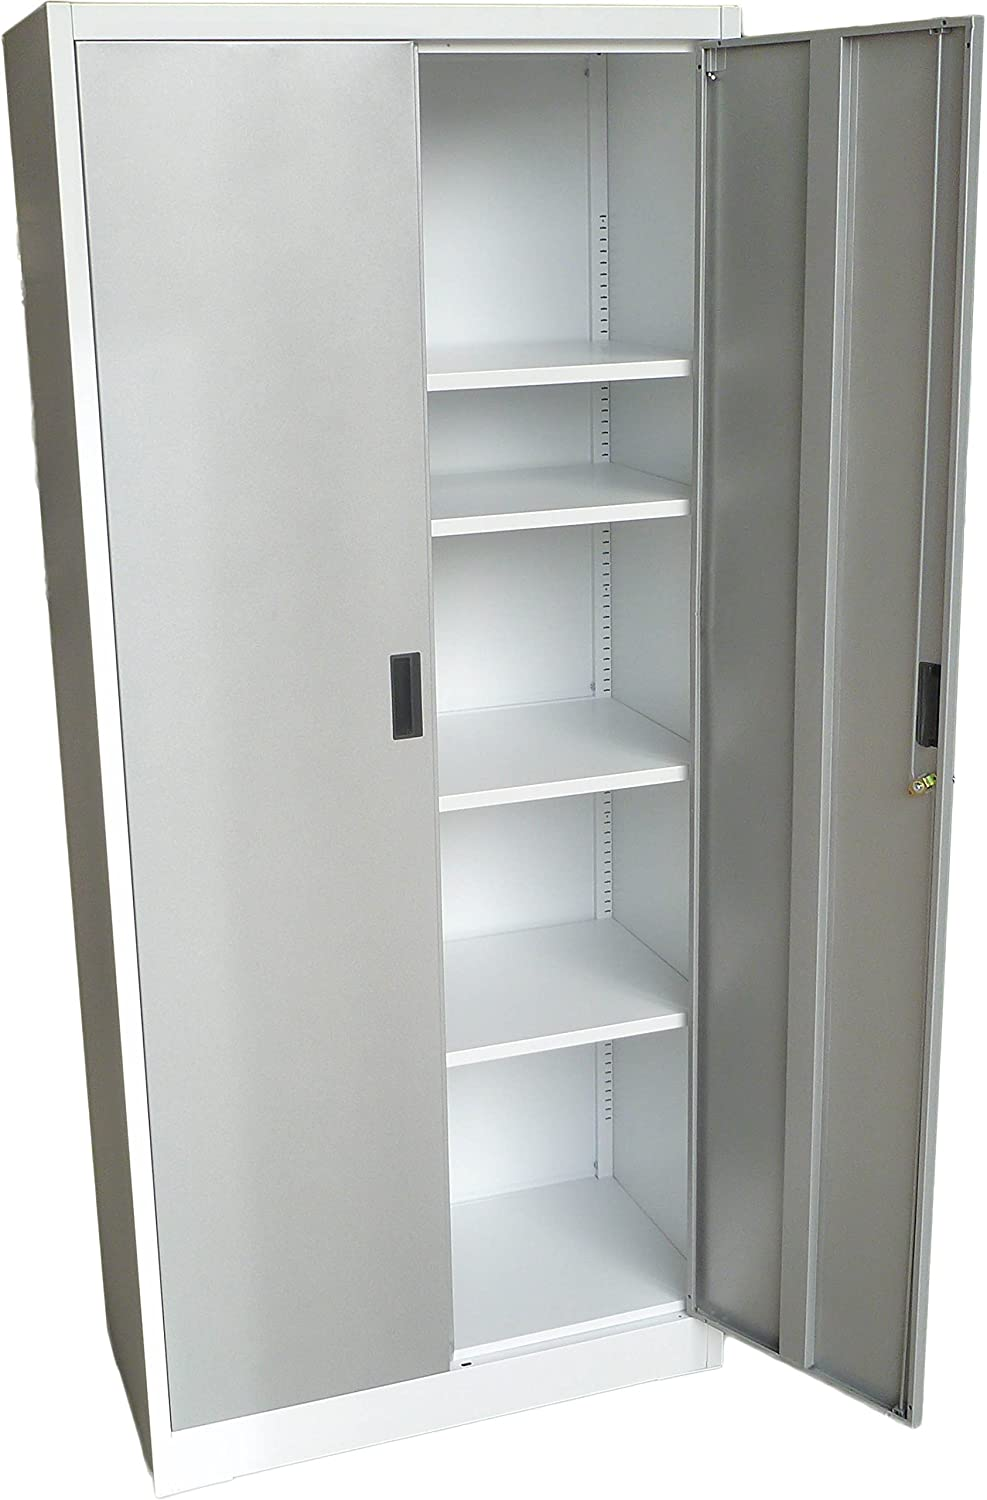 "Fedmax Metal Storage Cabinet 71"" Tall, Lockable Doors and Adjustable Shelves, 70.86"" Tall x 31.5"" W x 15.75"" D, Great Steel Locker for Garage, Kitchen Pantry, Office and Laundry Room (White)"